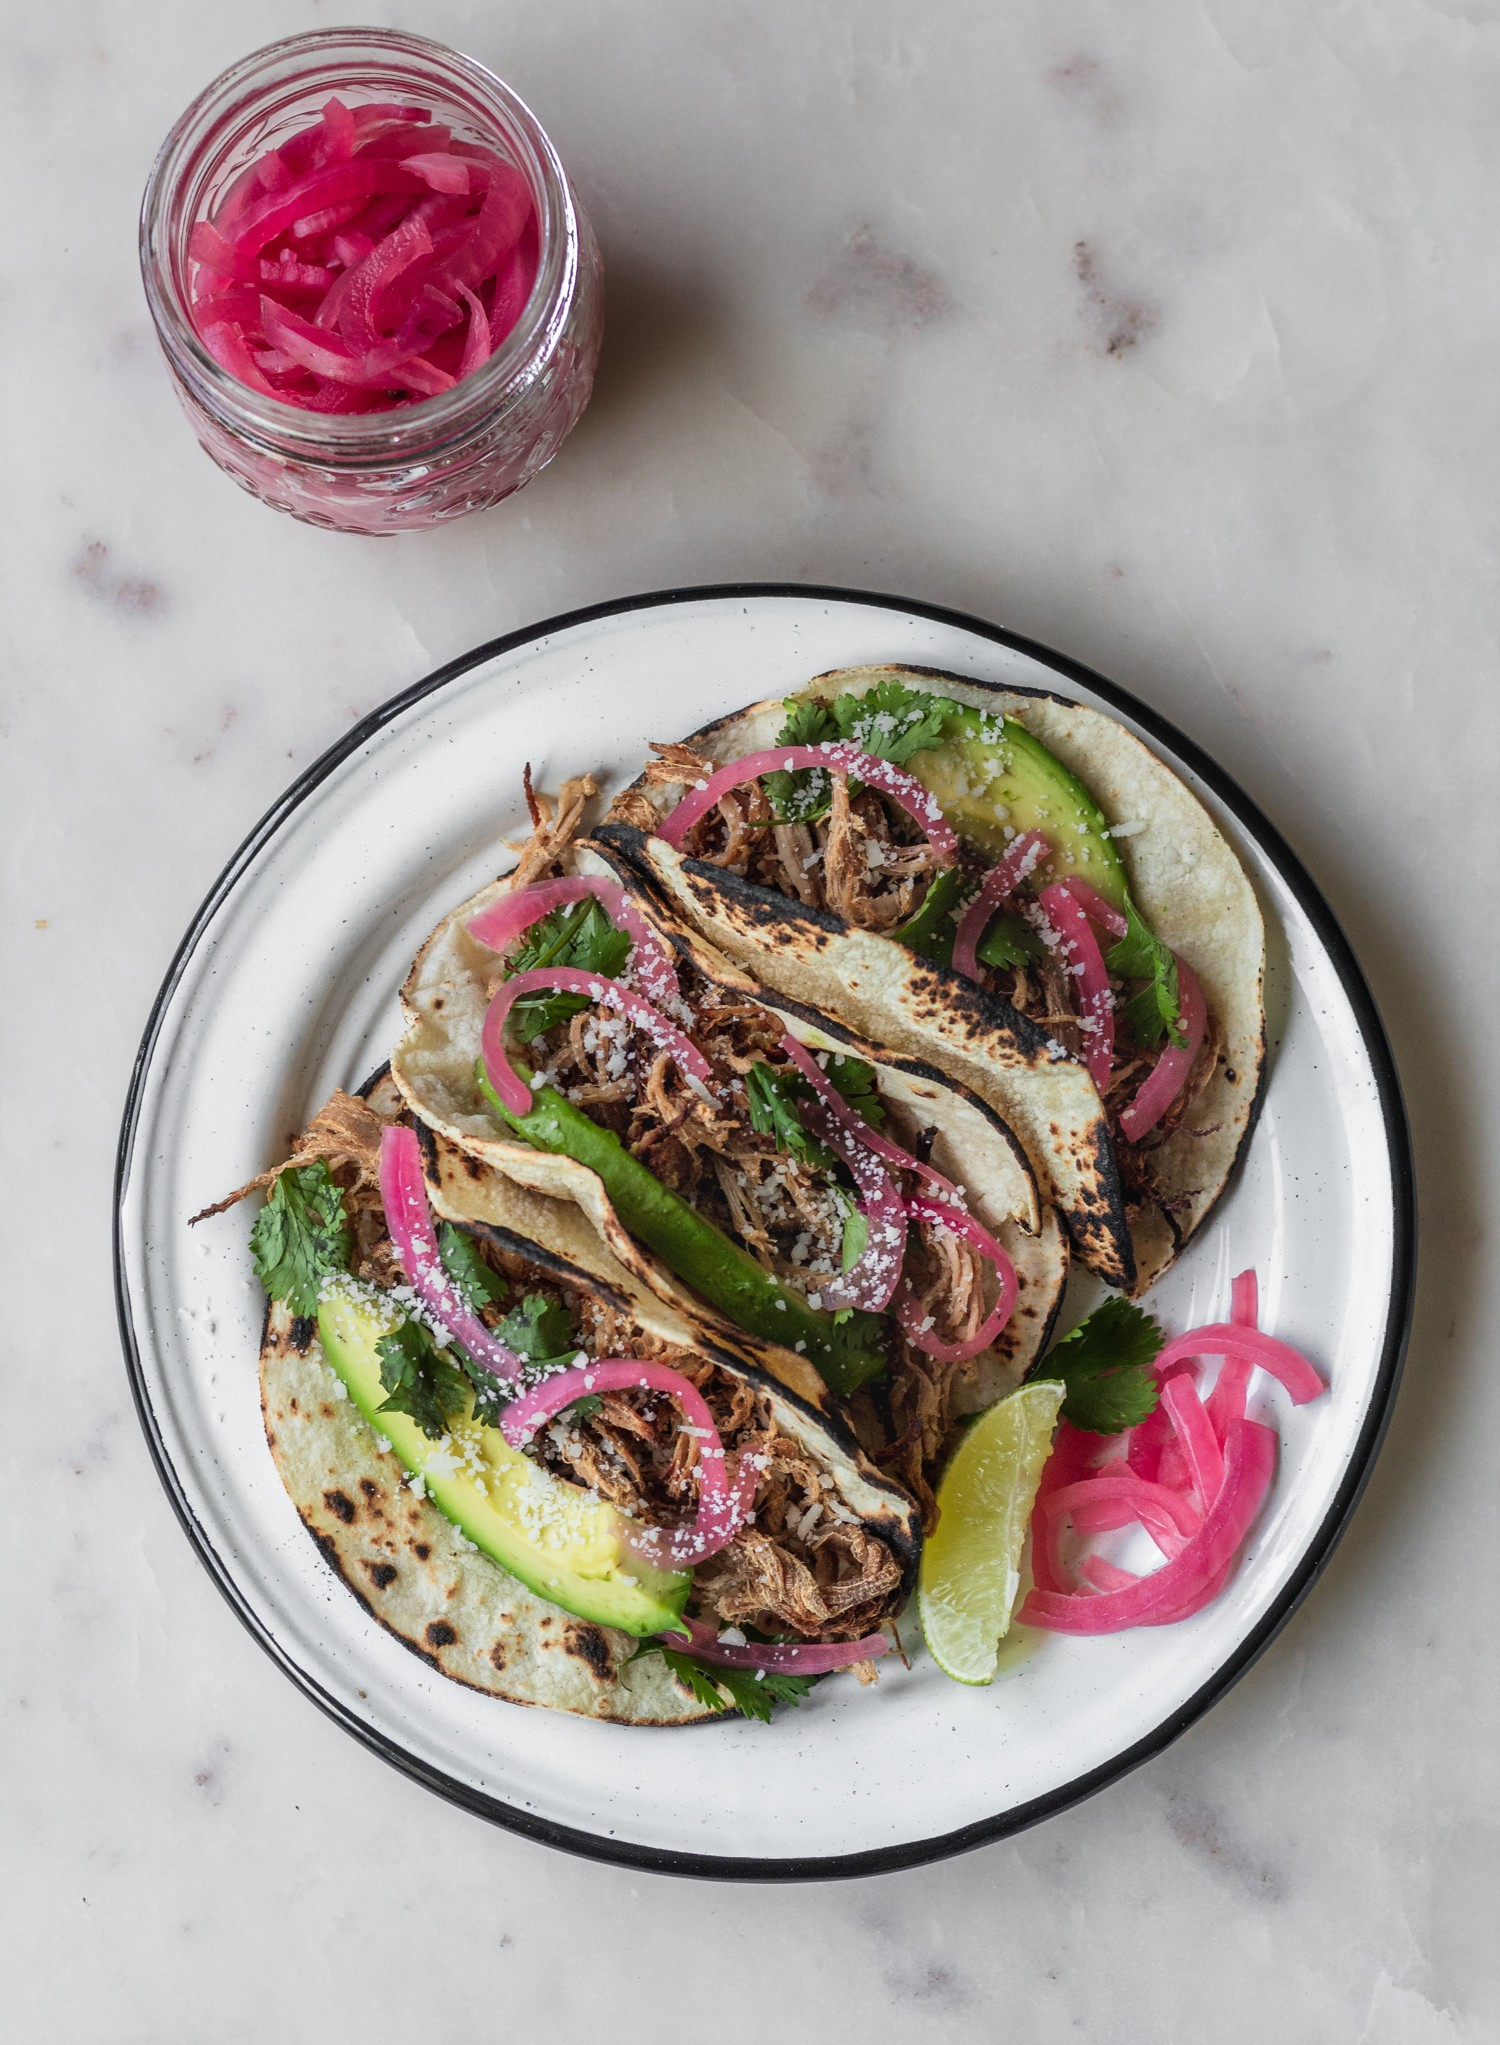 Pork tacos with blistered corn tortillas, pickled onions, and avocado.